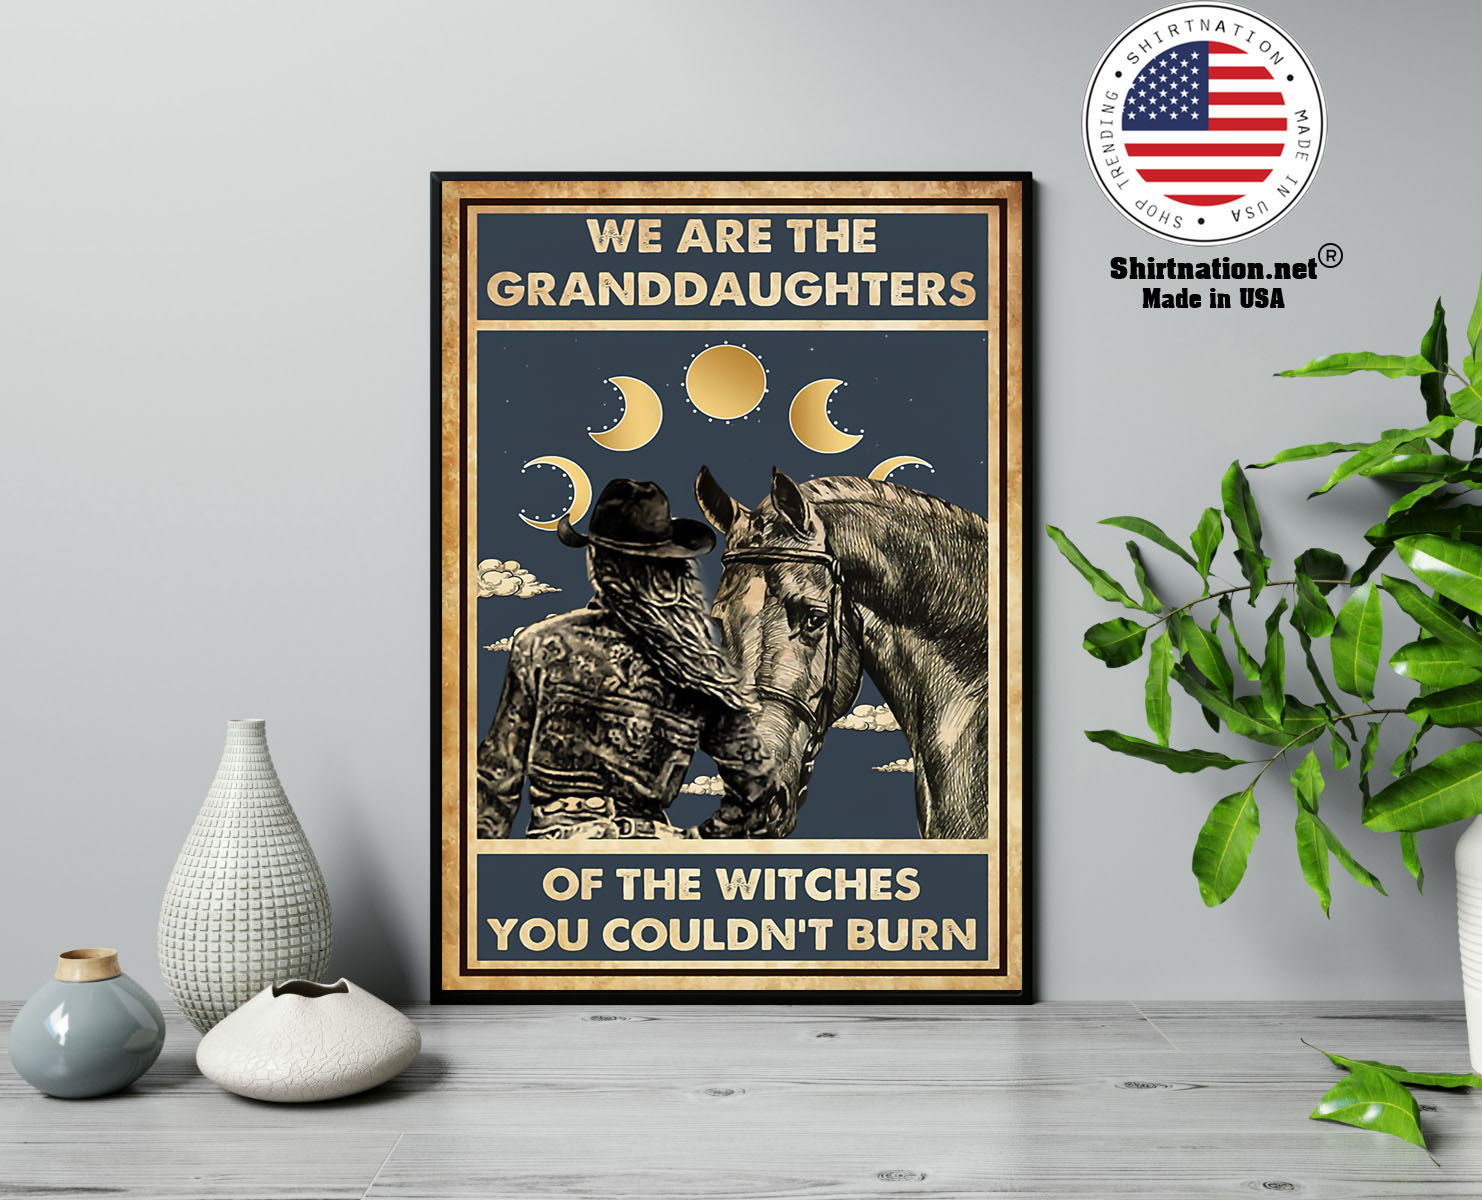 We are the granddaughters of the withches you coundnt burn poster 13